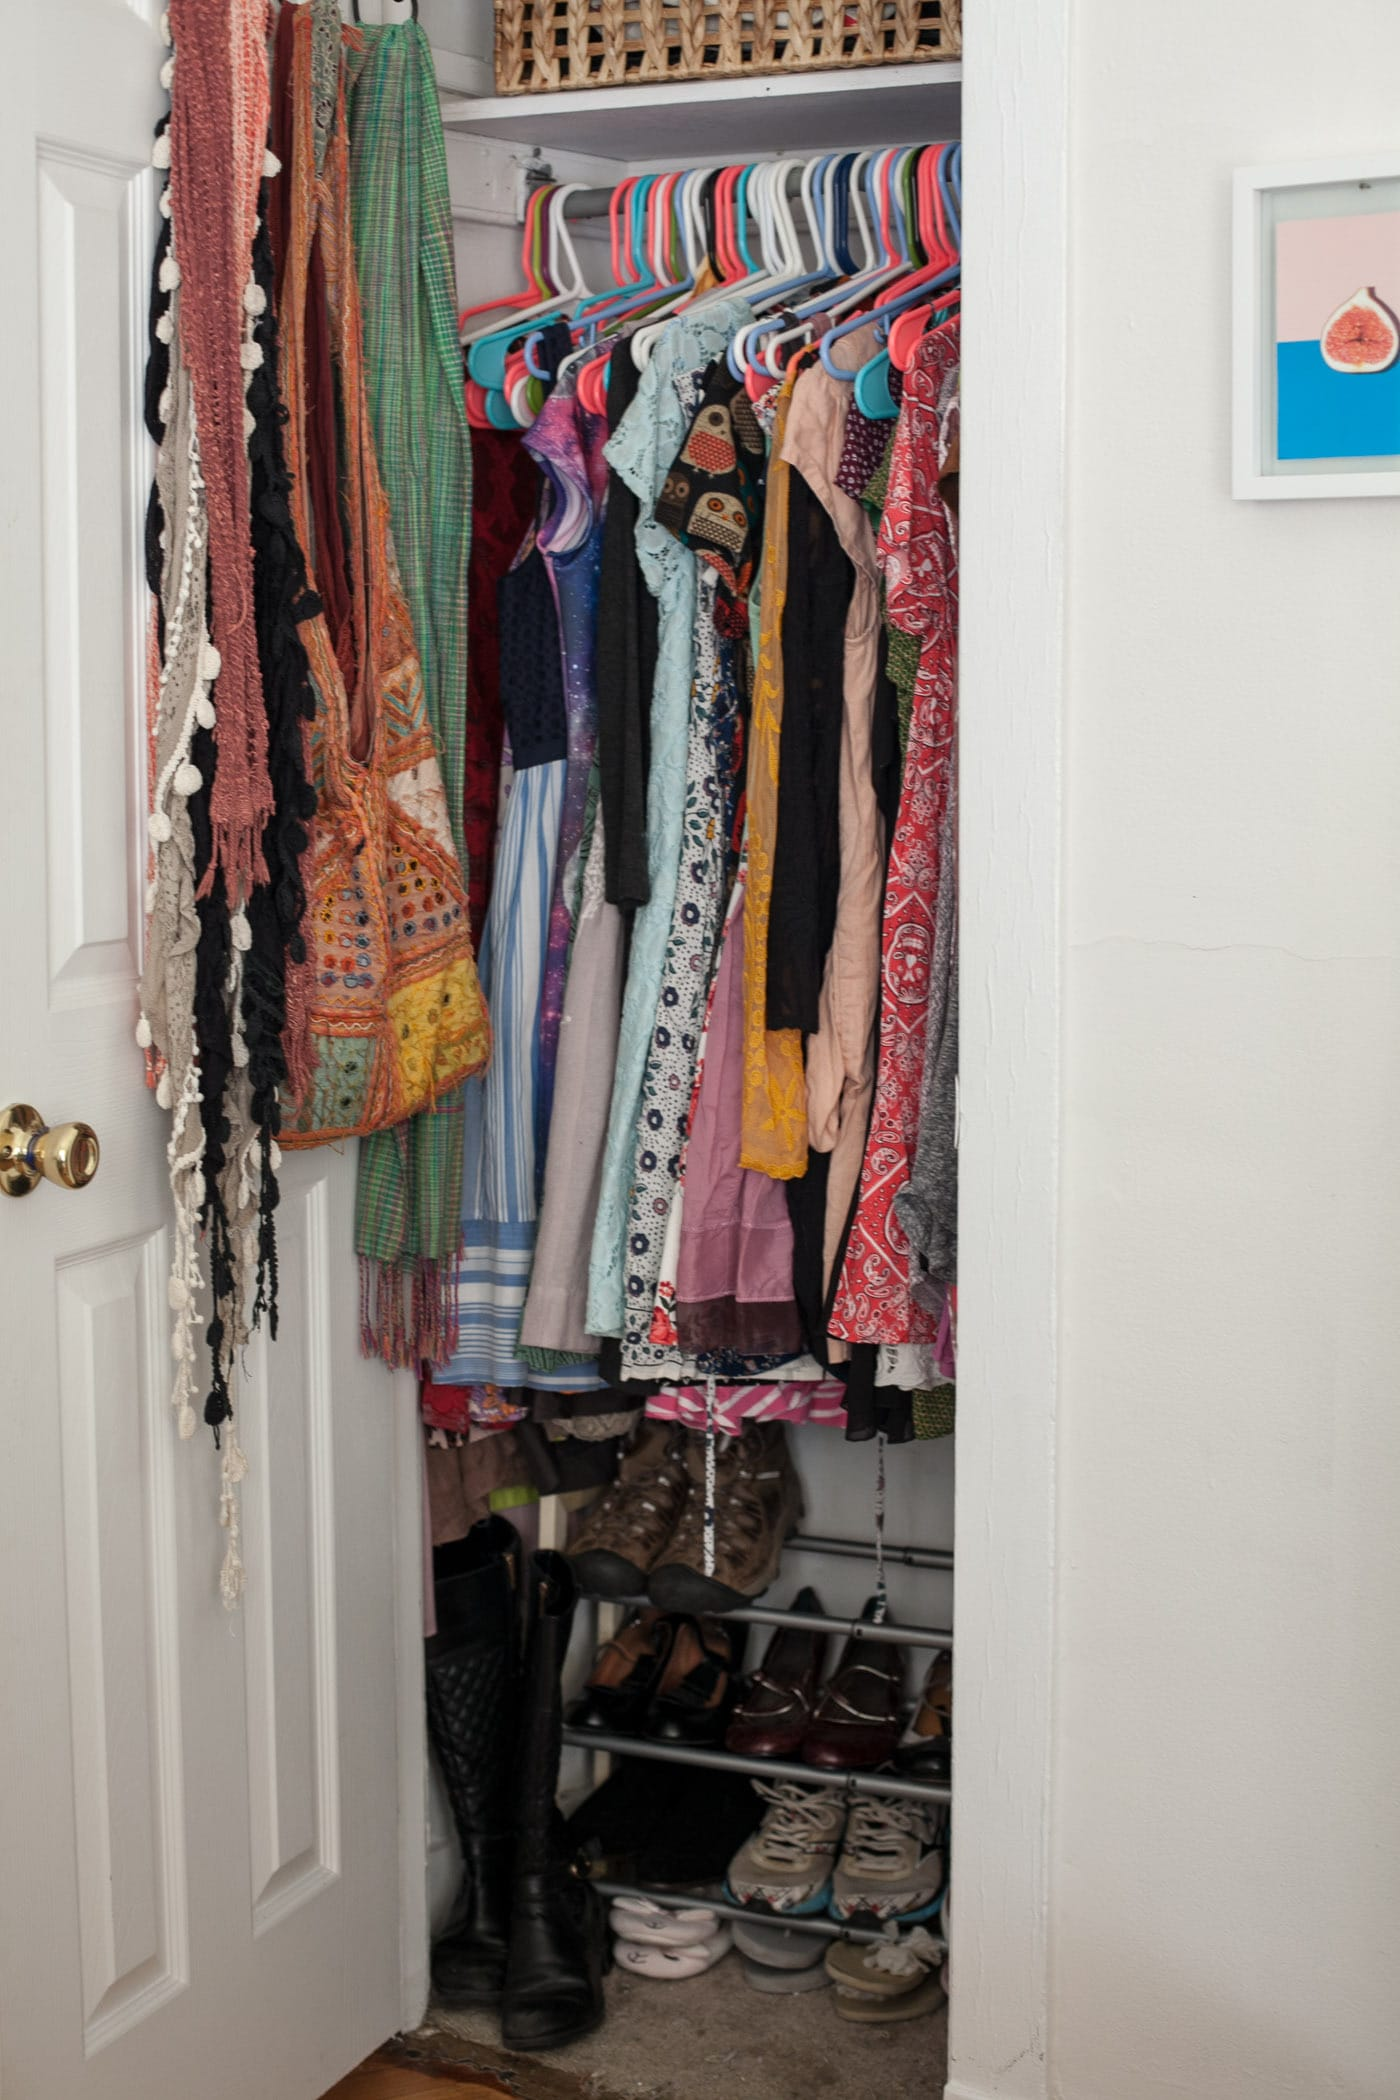 AFTER My bedroom closet has all of my shoes neatly organized, my dresses hanging, and a couple of scarves and bags. That's it!